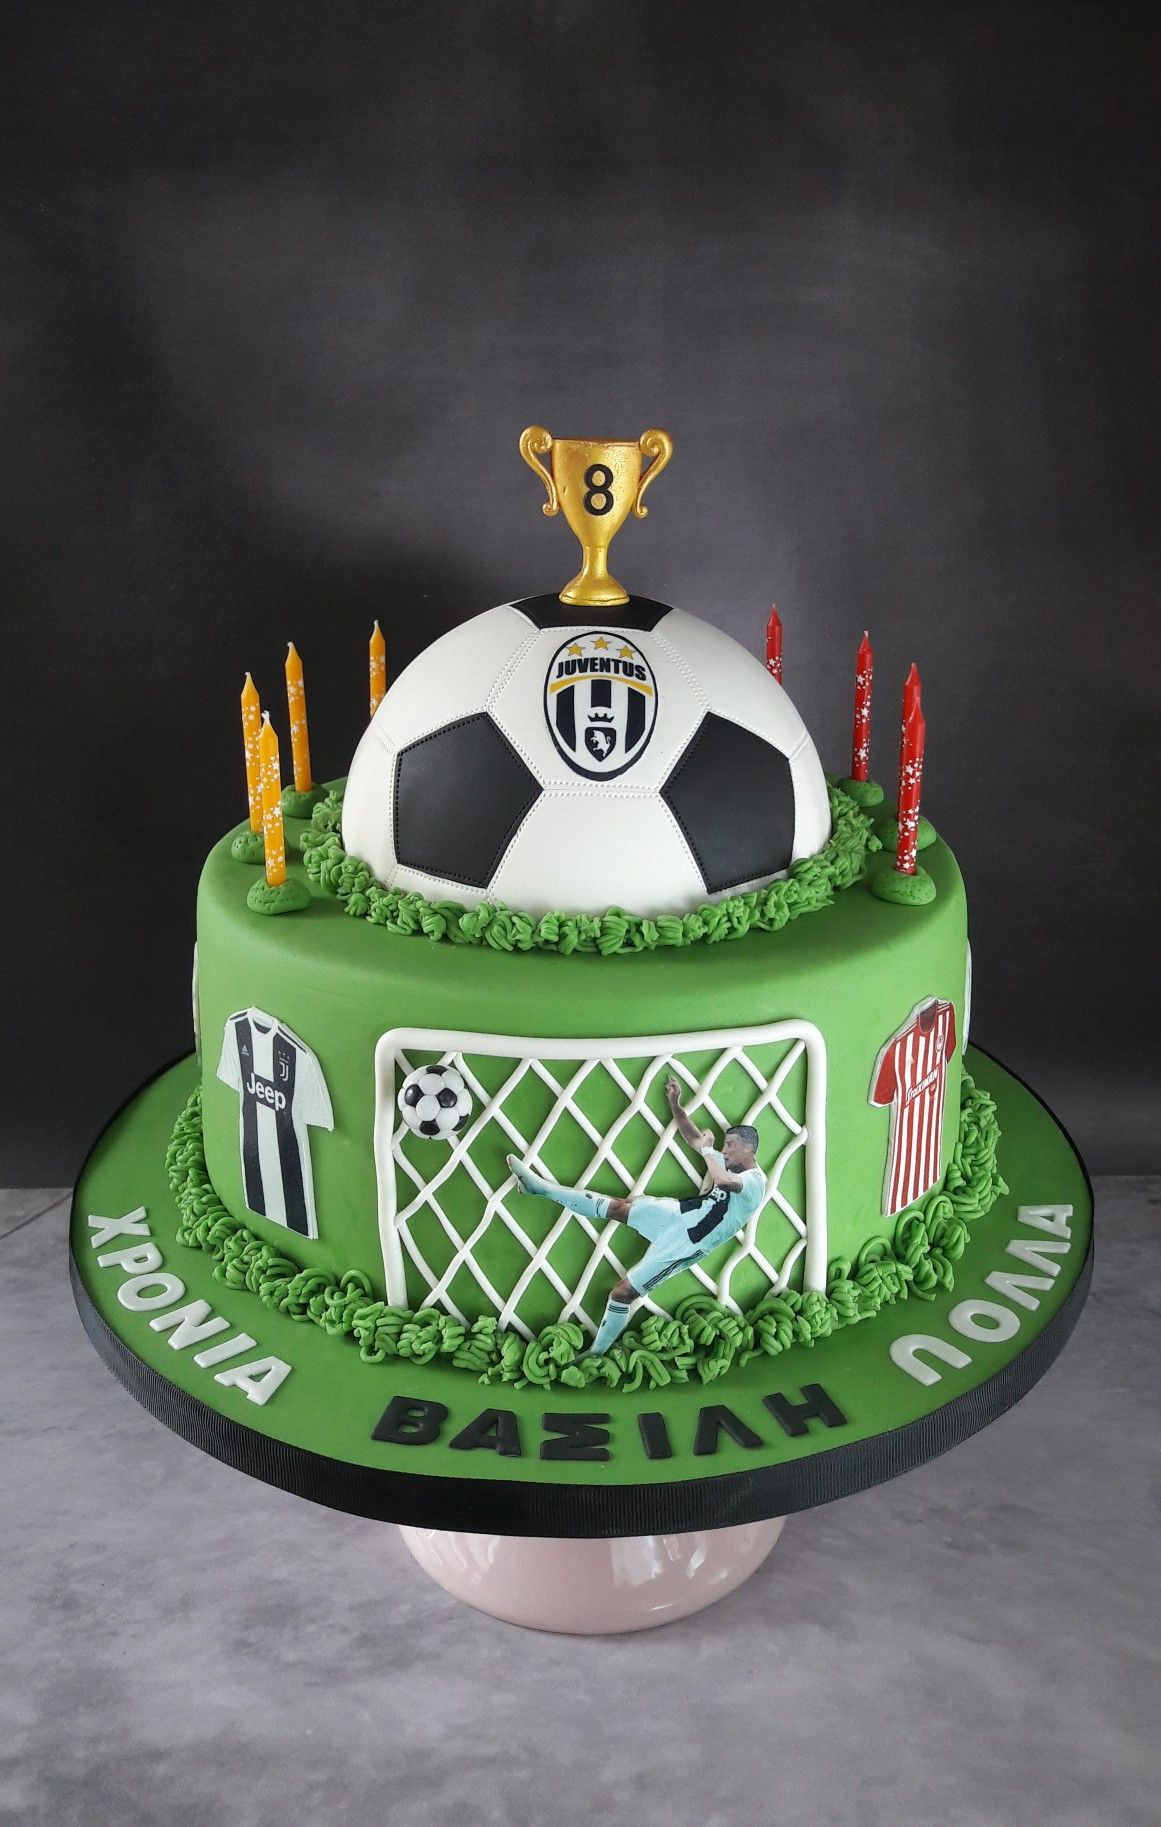 Football Cake For A Young Boy Who Loves Ronaldo And Olympiacos Soccer Birthday Cakes Football Birthday Cake Cake